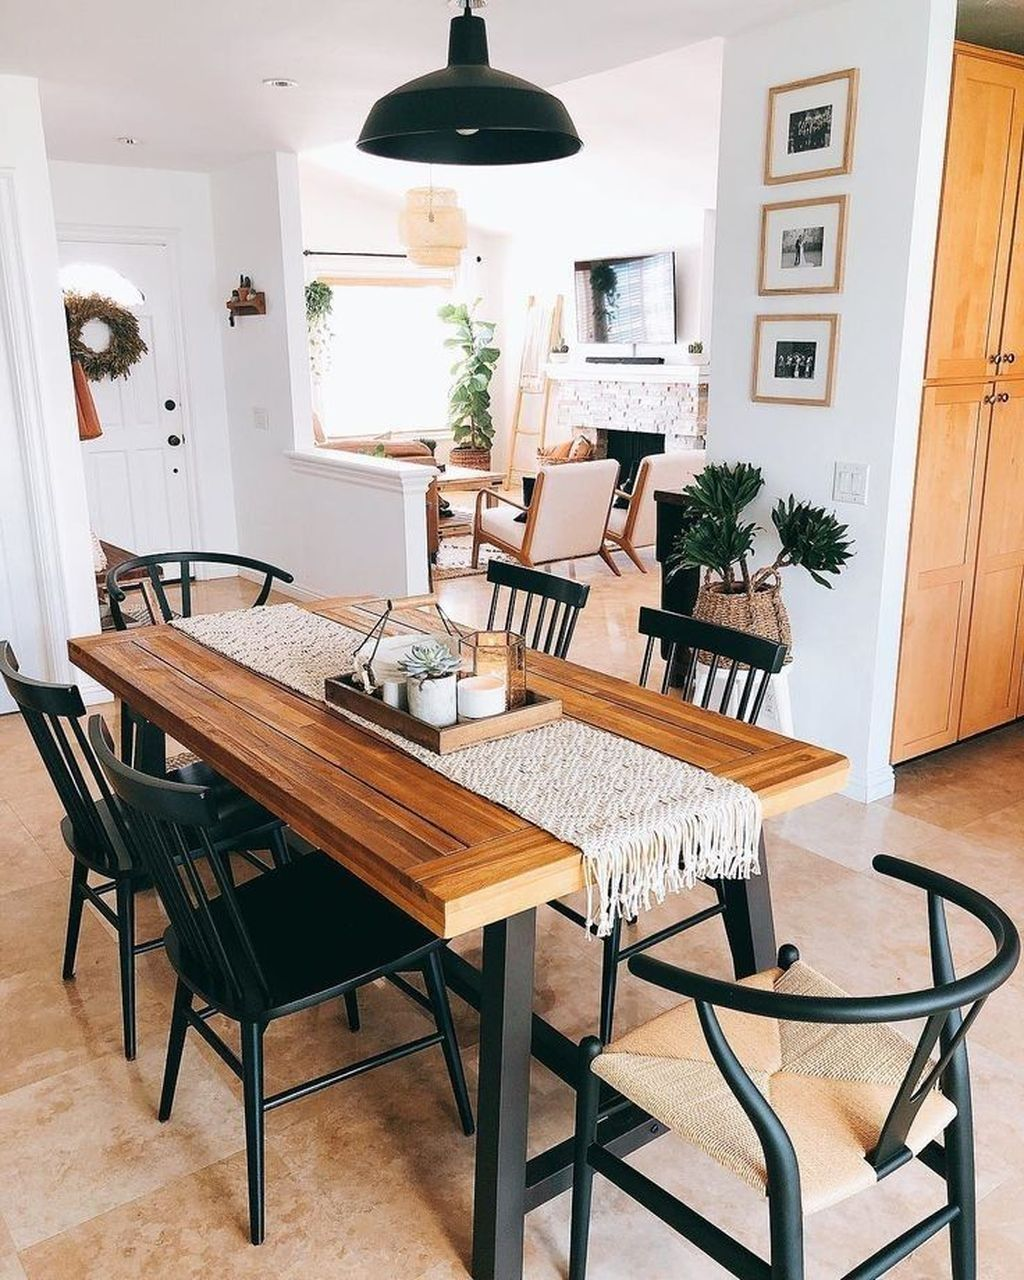 Popular Rustic Farmhouse Style Ideas For Dining Room Decor 21